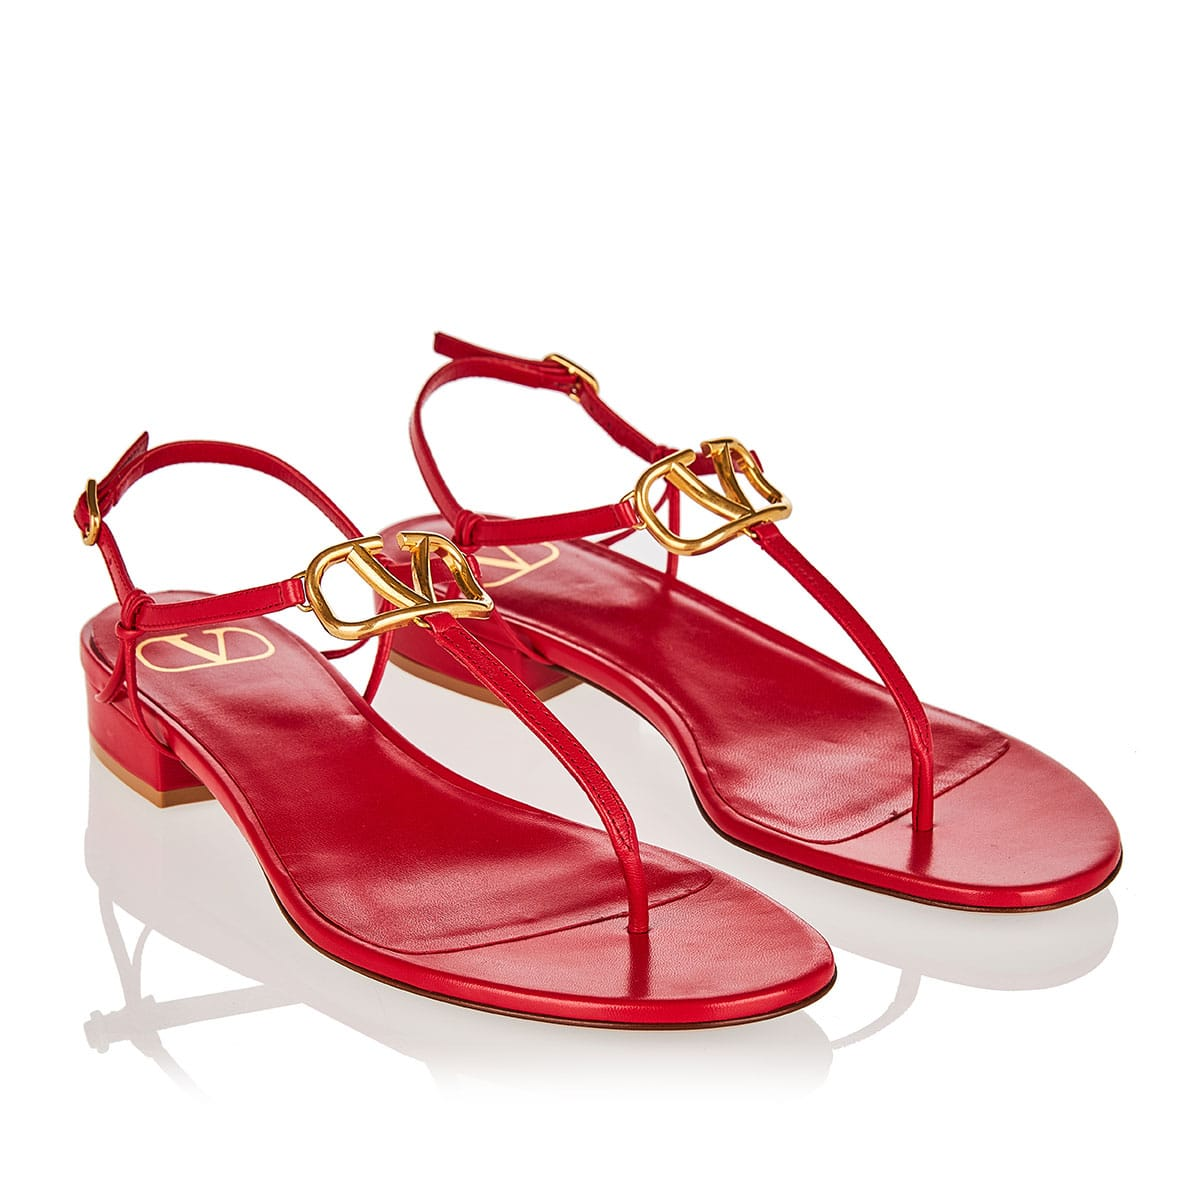 VLOGO flat leather sandals